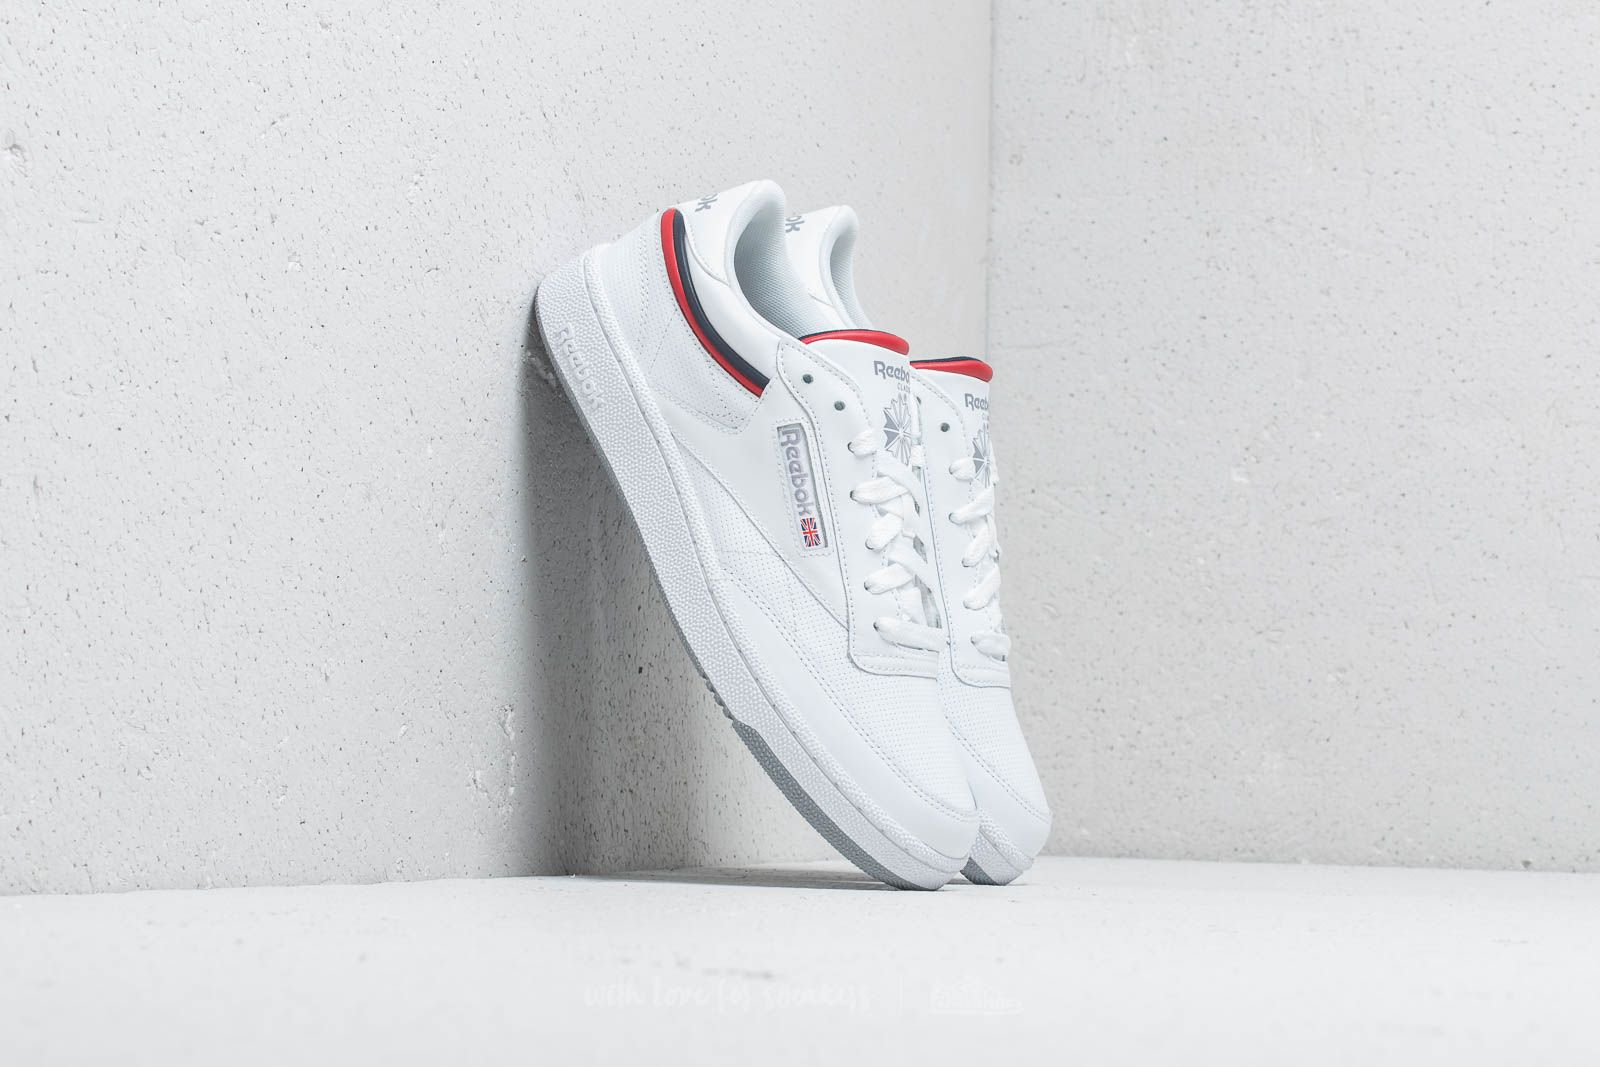 ff4cb88c5d9 Reebok Club C 85 MU White  Navy  Red  Shadow at a great price